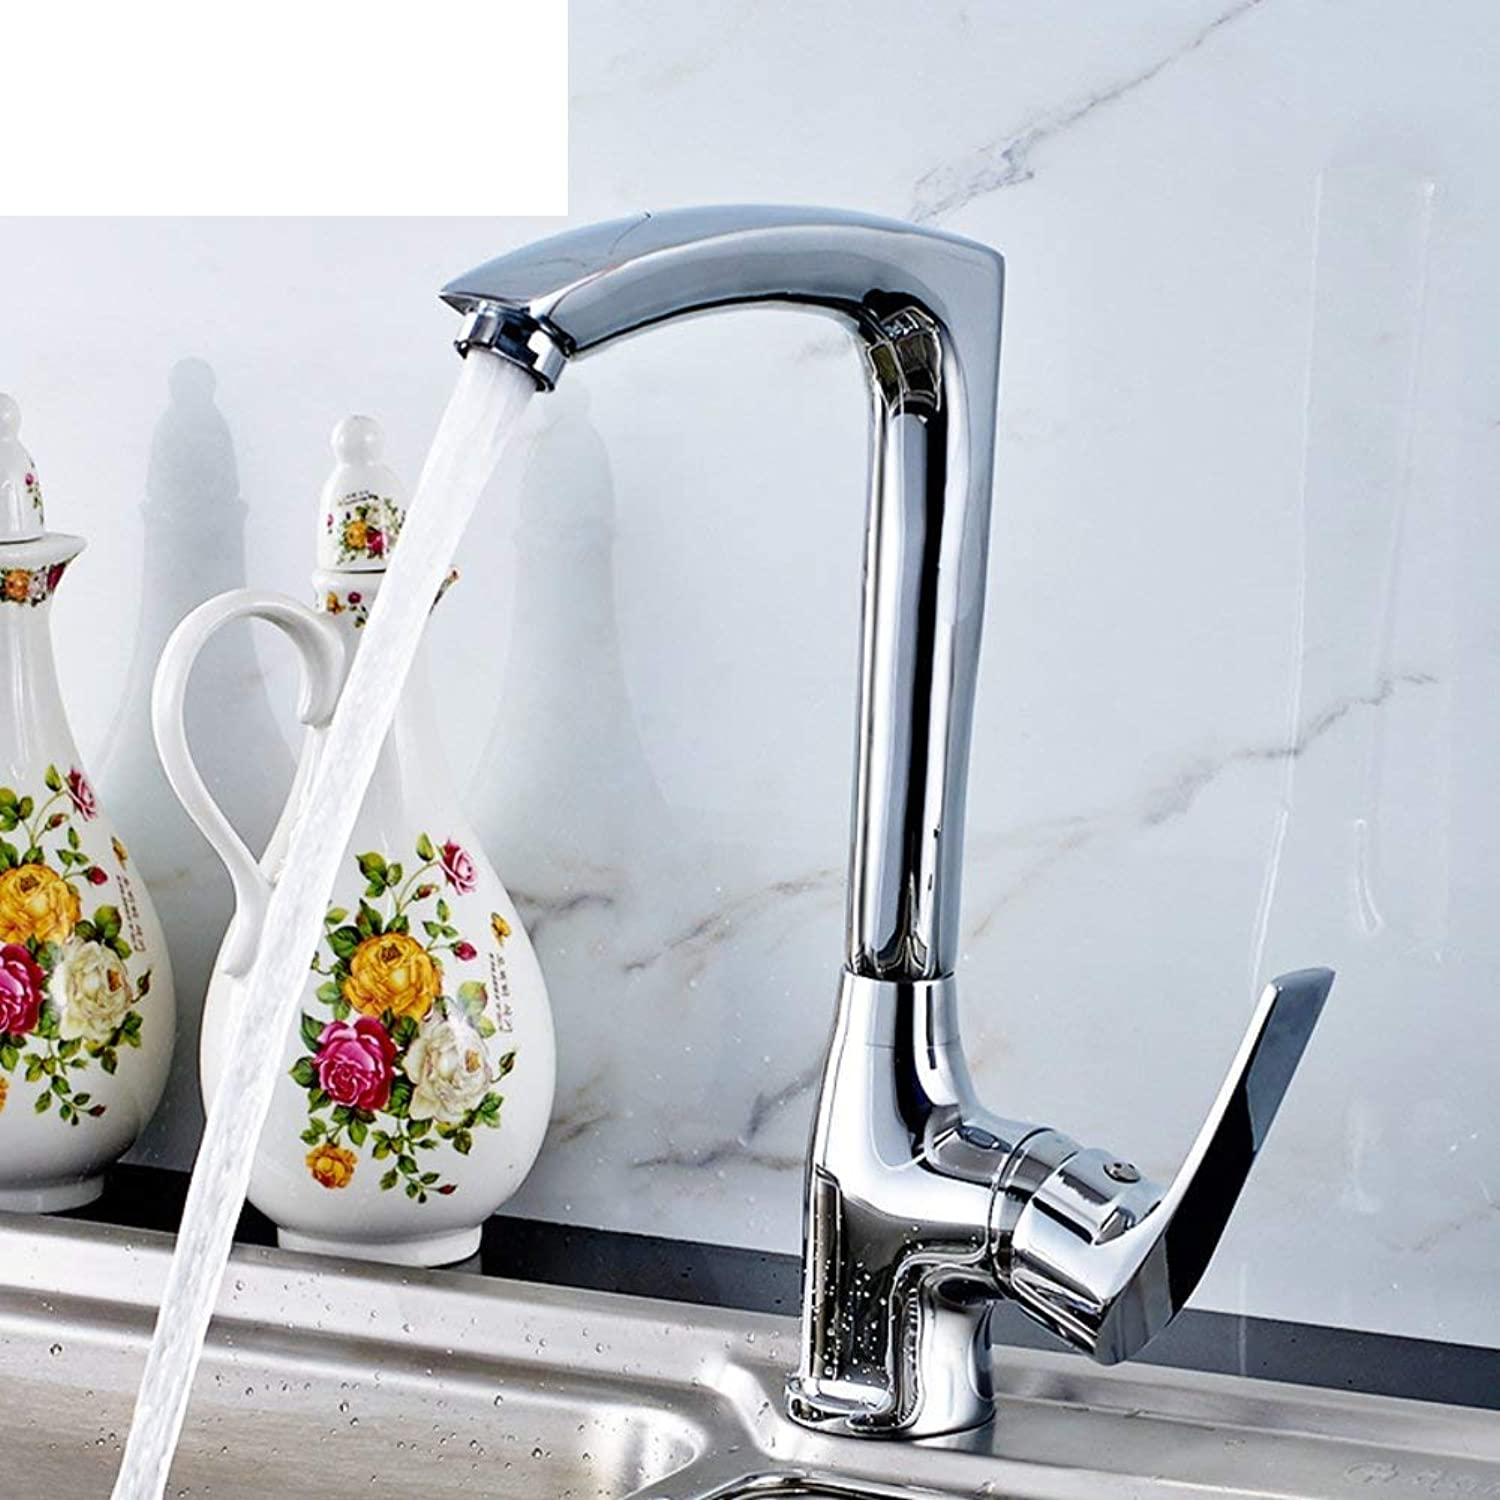 Oudan Vegetables basin kitchen faucet Hot and cold sink faucet Vegetables basin kitchen faucet (color   -, Size   -)